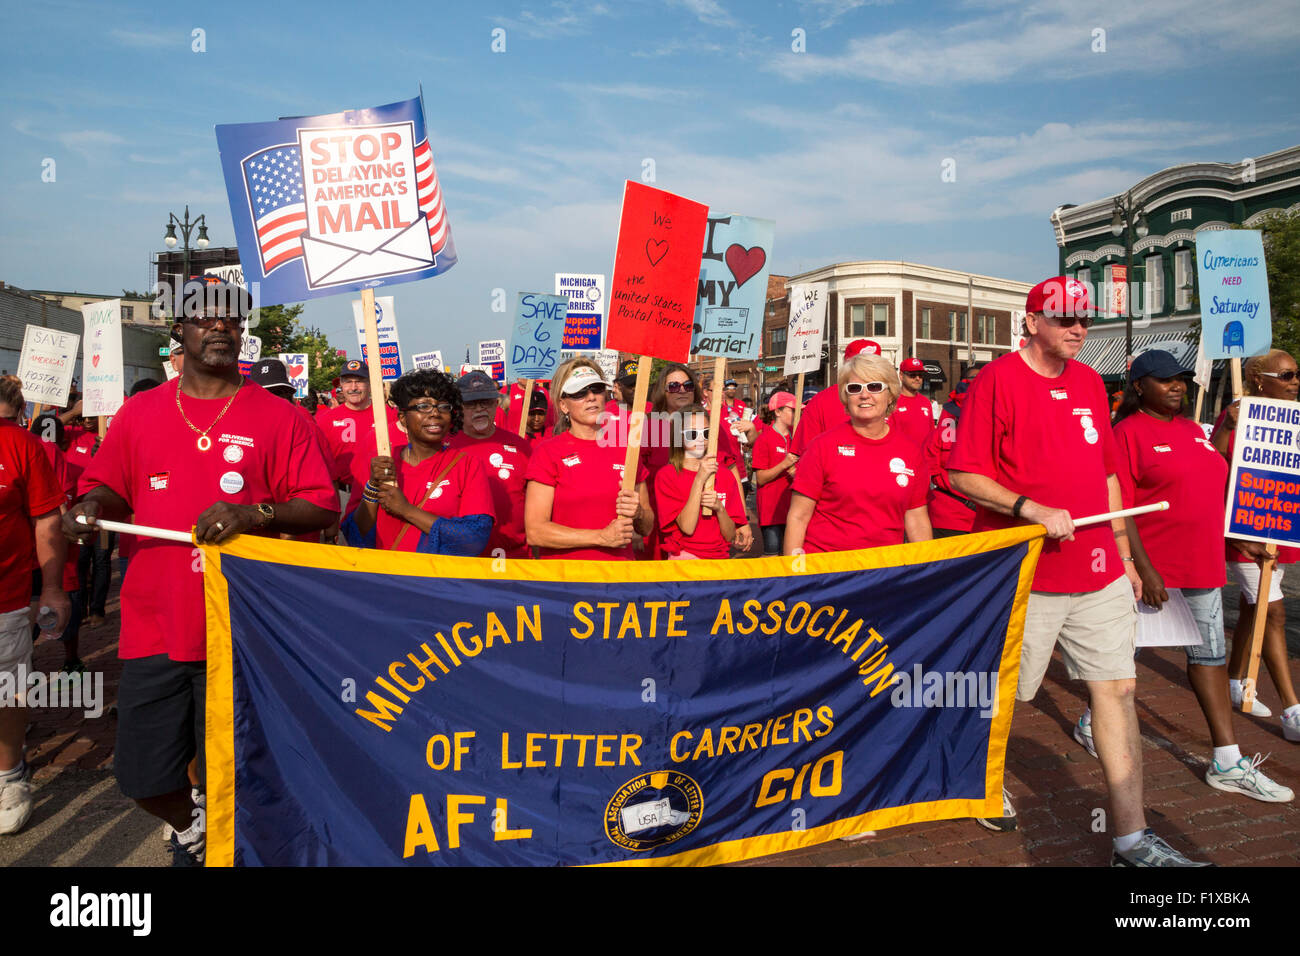 Detroit, Michigan - Members of the National Association of Letter Carriers protest plans for five-day-a-week mail - Stock Image